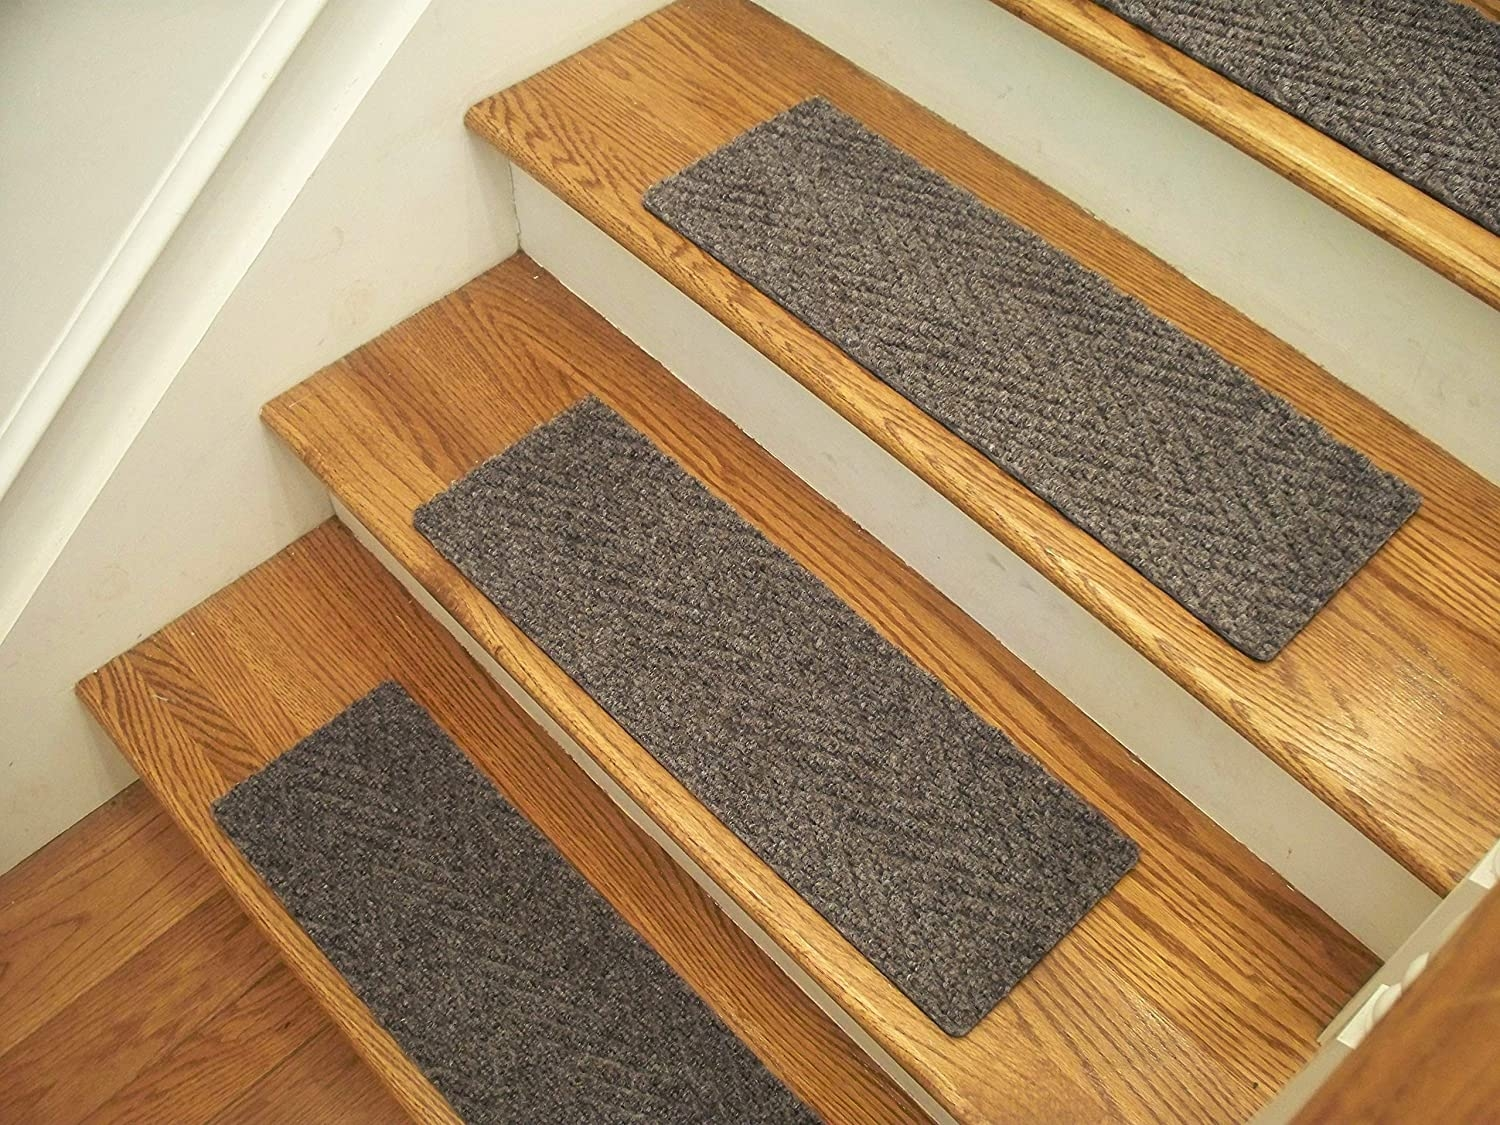 Essential Carpet Stair Treads Style Herringbone Color Beige | Herringbone Carpet For Stairs | High Traffic | Textured | Classical Design | Striped | Carpet Stair Treads